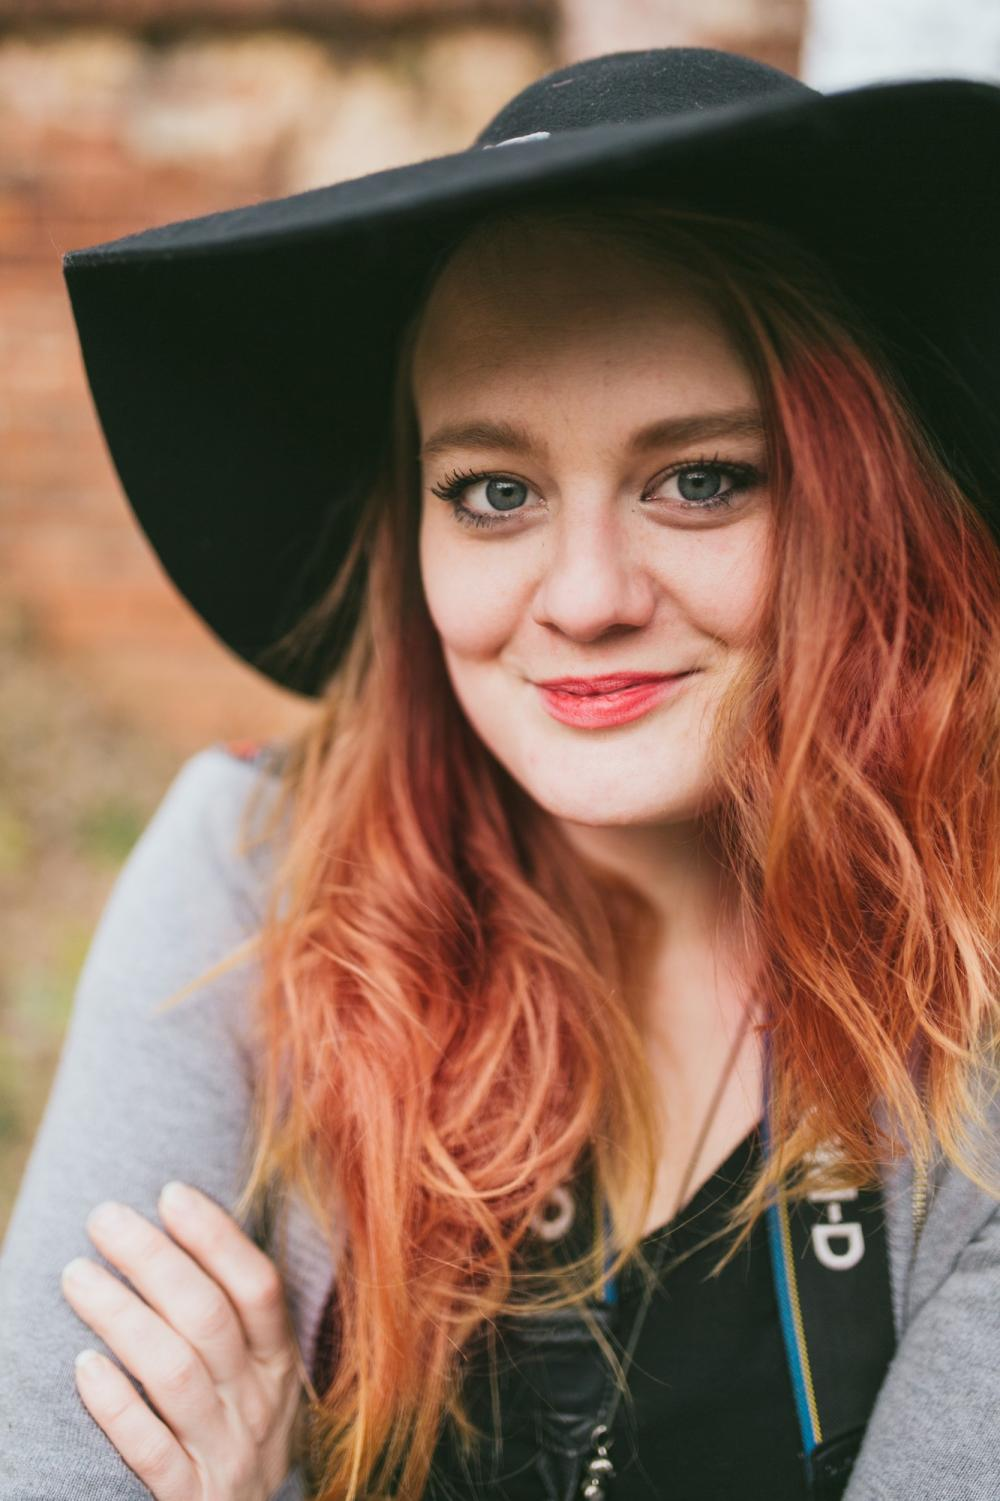 Jessica Whitley is a photographer based in Macon, Georgia. Photo provided by Jessica Whitley